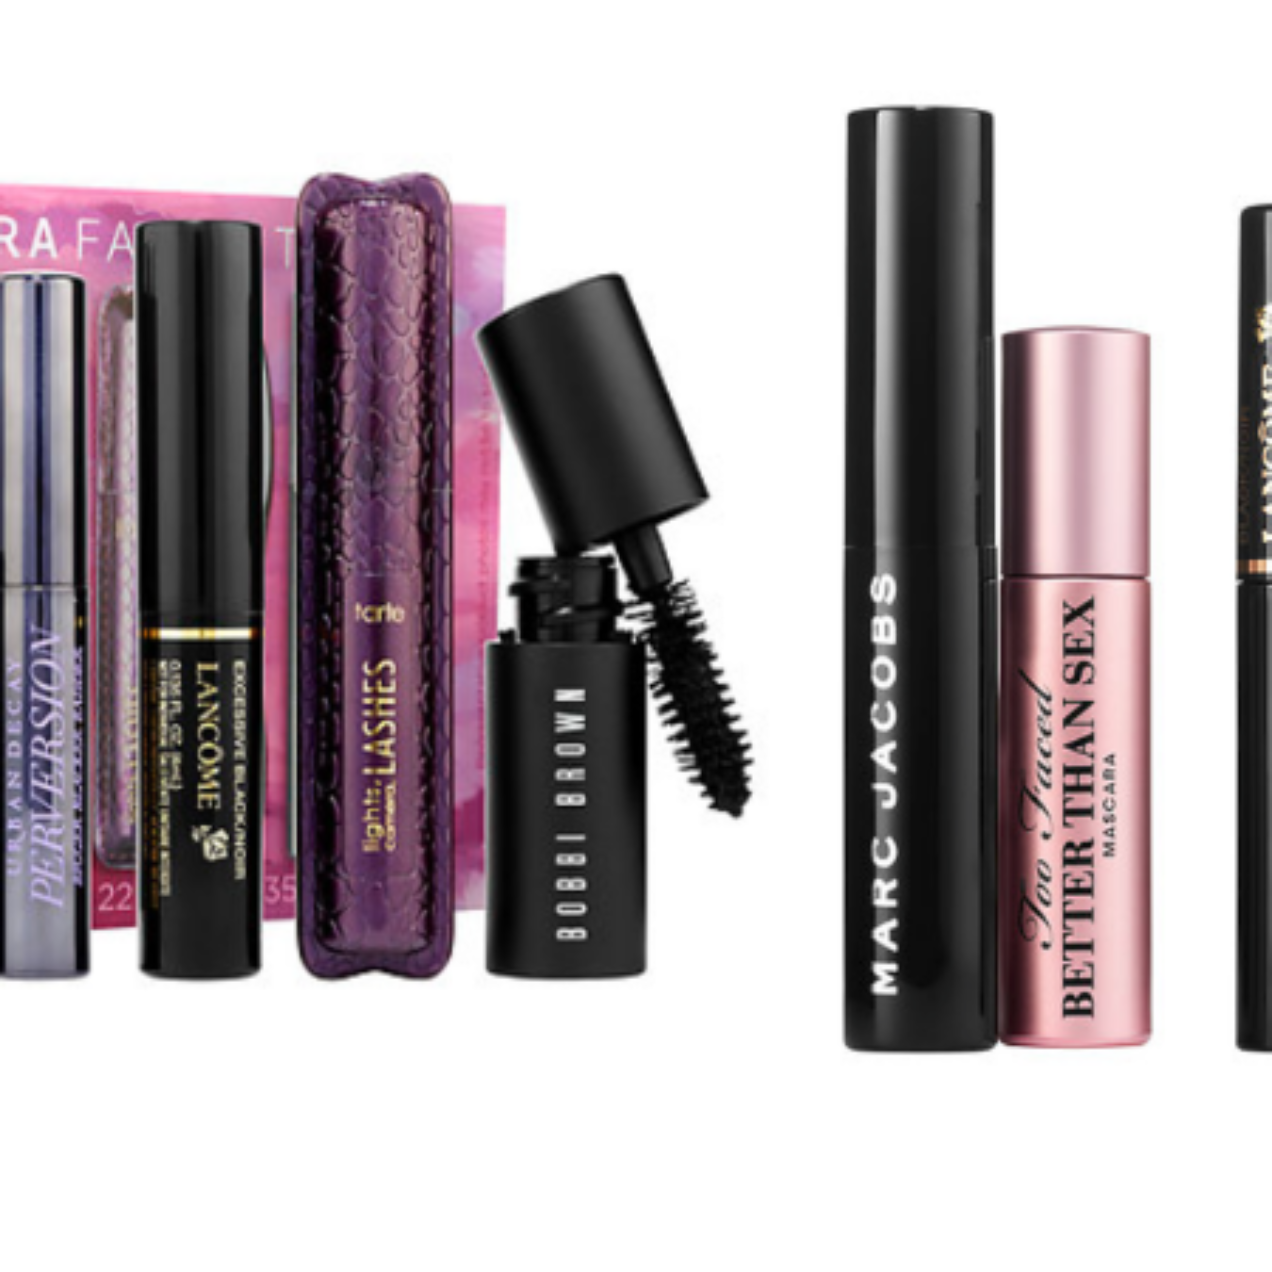 Sephora Favorites Lashstash To Go Only $28 ($52 Value) – Includes 5 Deluxe Mascaras + Voucher For a Free Full Size Of Your Choice